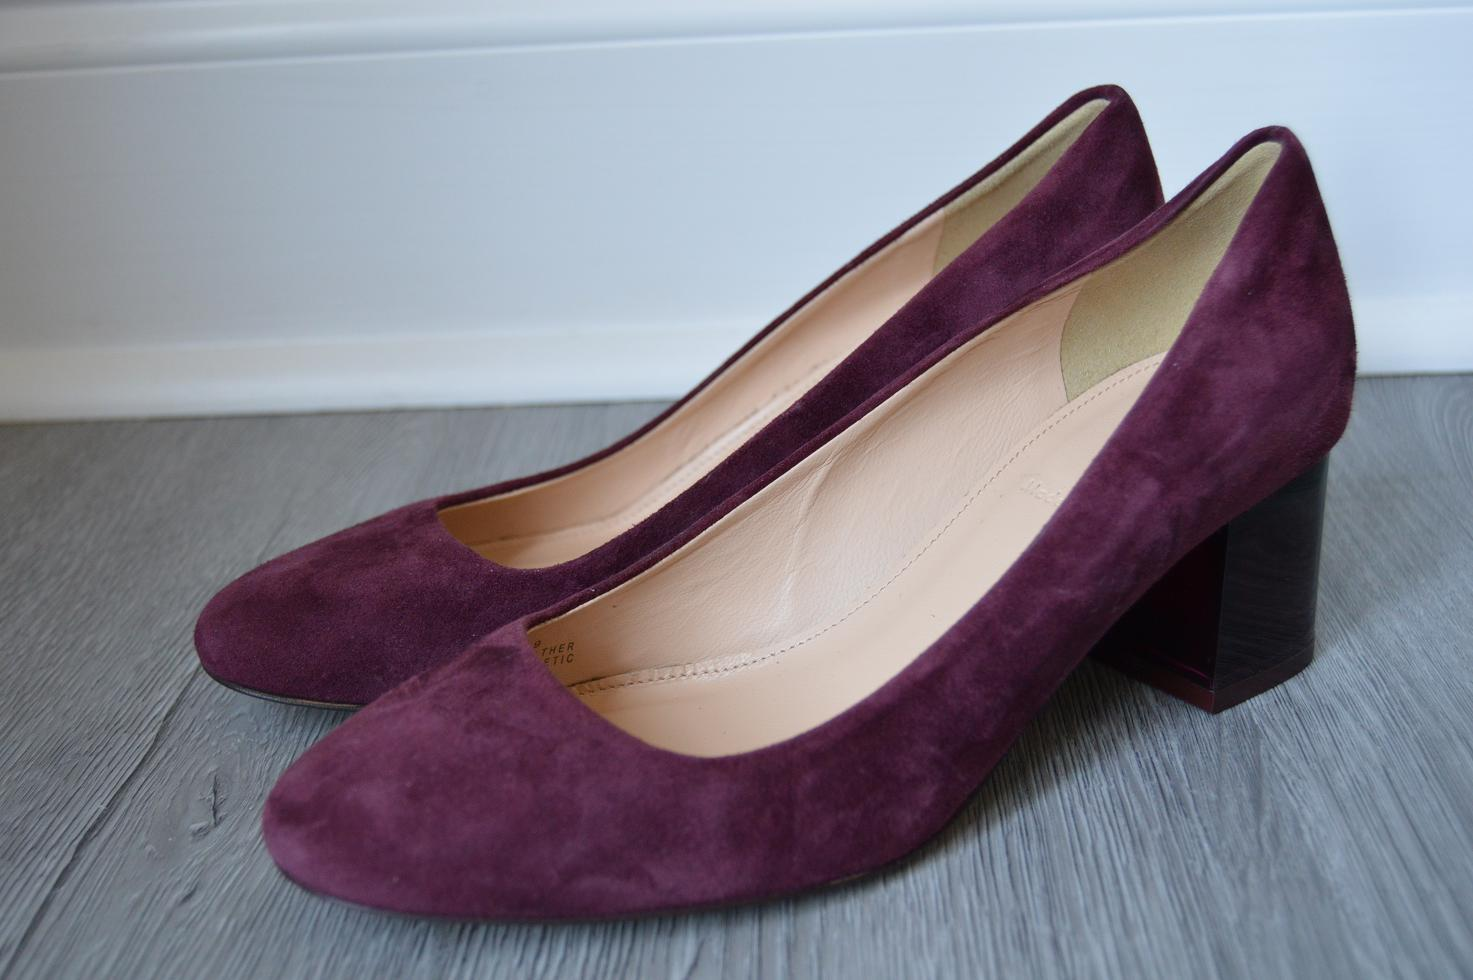 Details about JCrew  218 Lucite Heels in Suede 10 Shoes Vintage Cabernet  Red f5959 Block